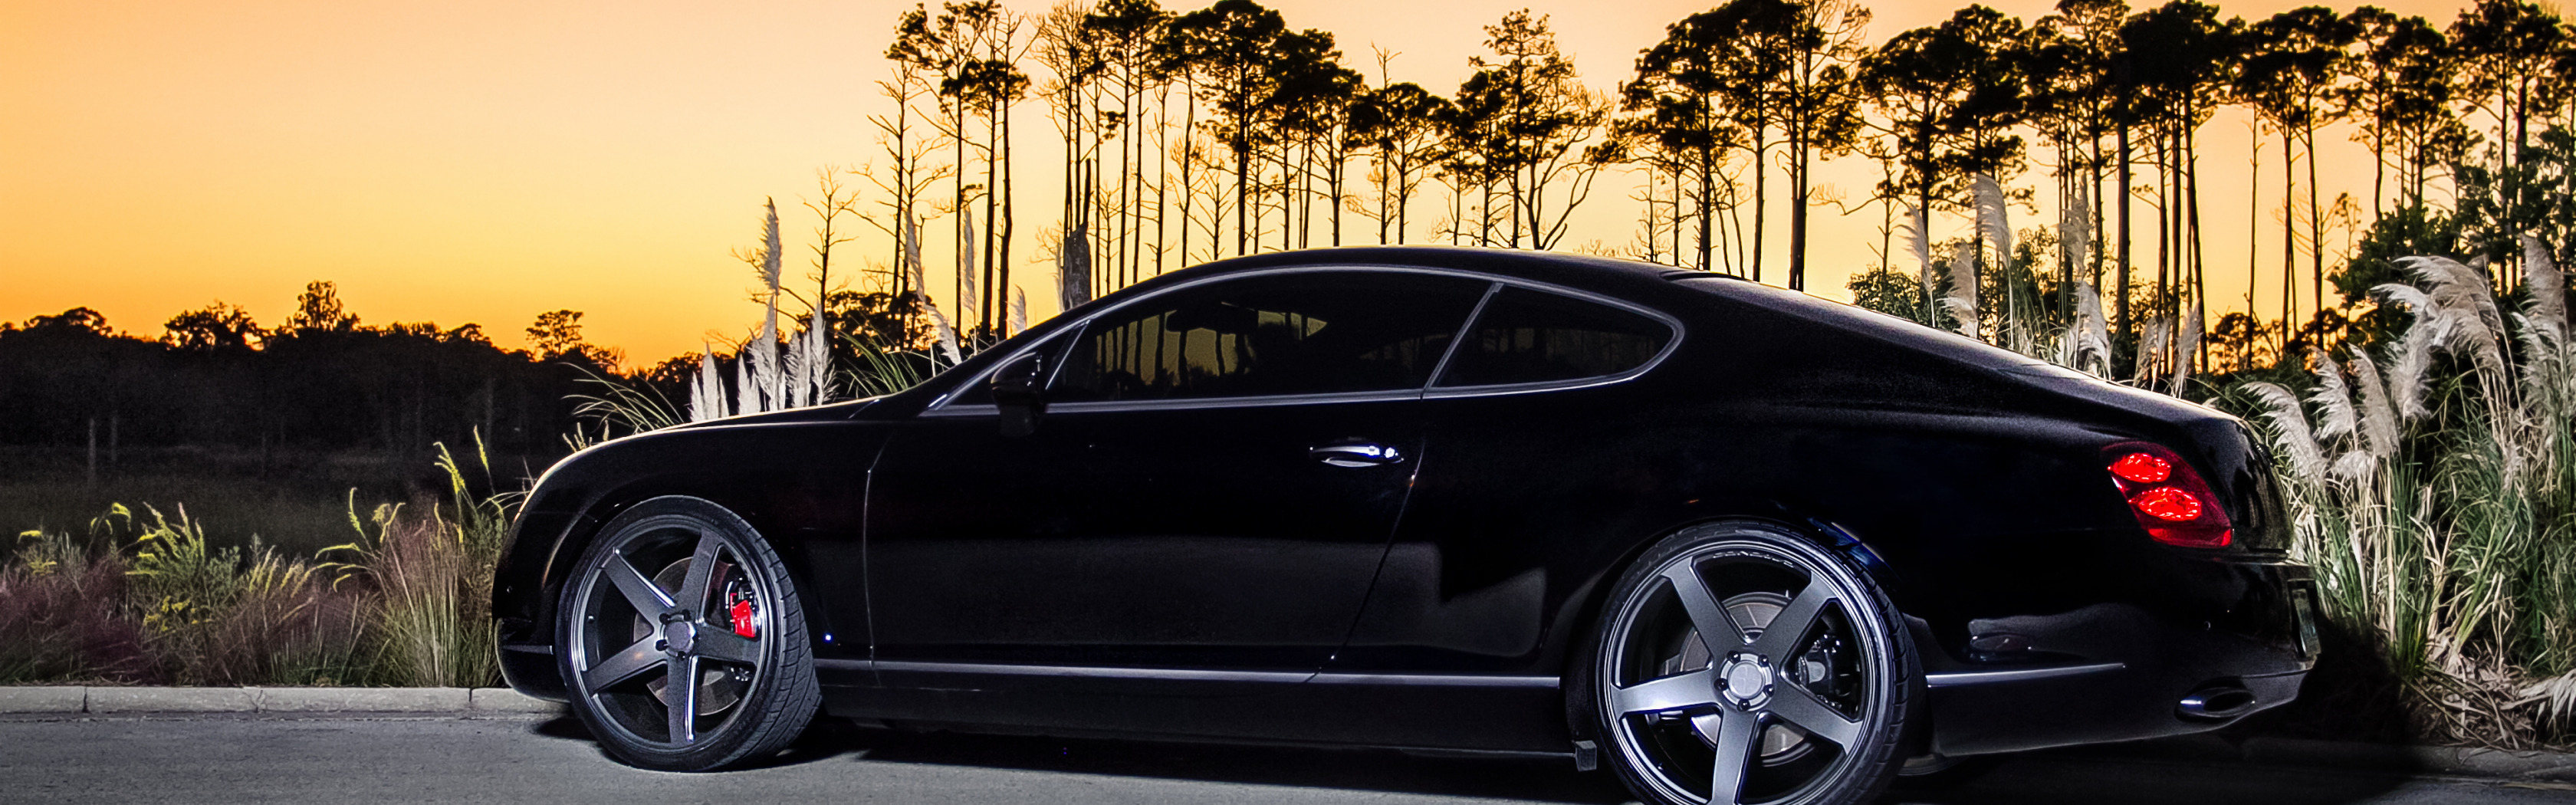 Bentley black  № 200008 без смс